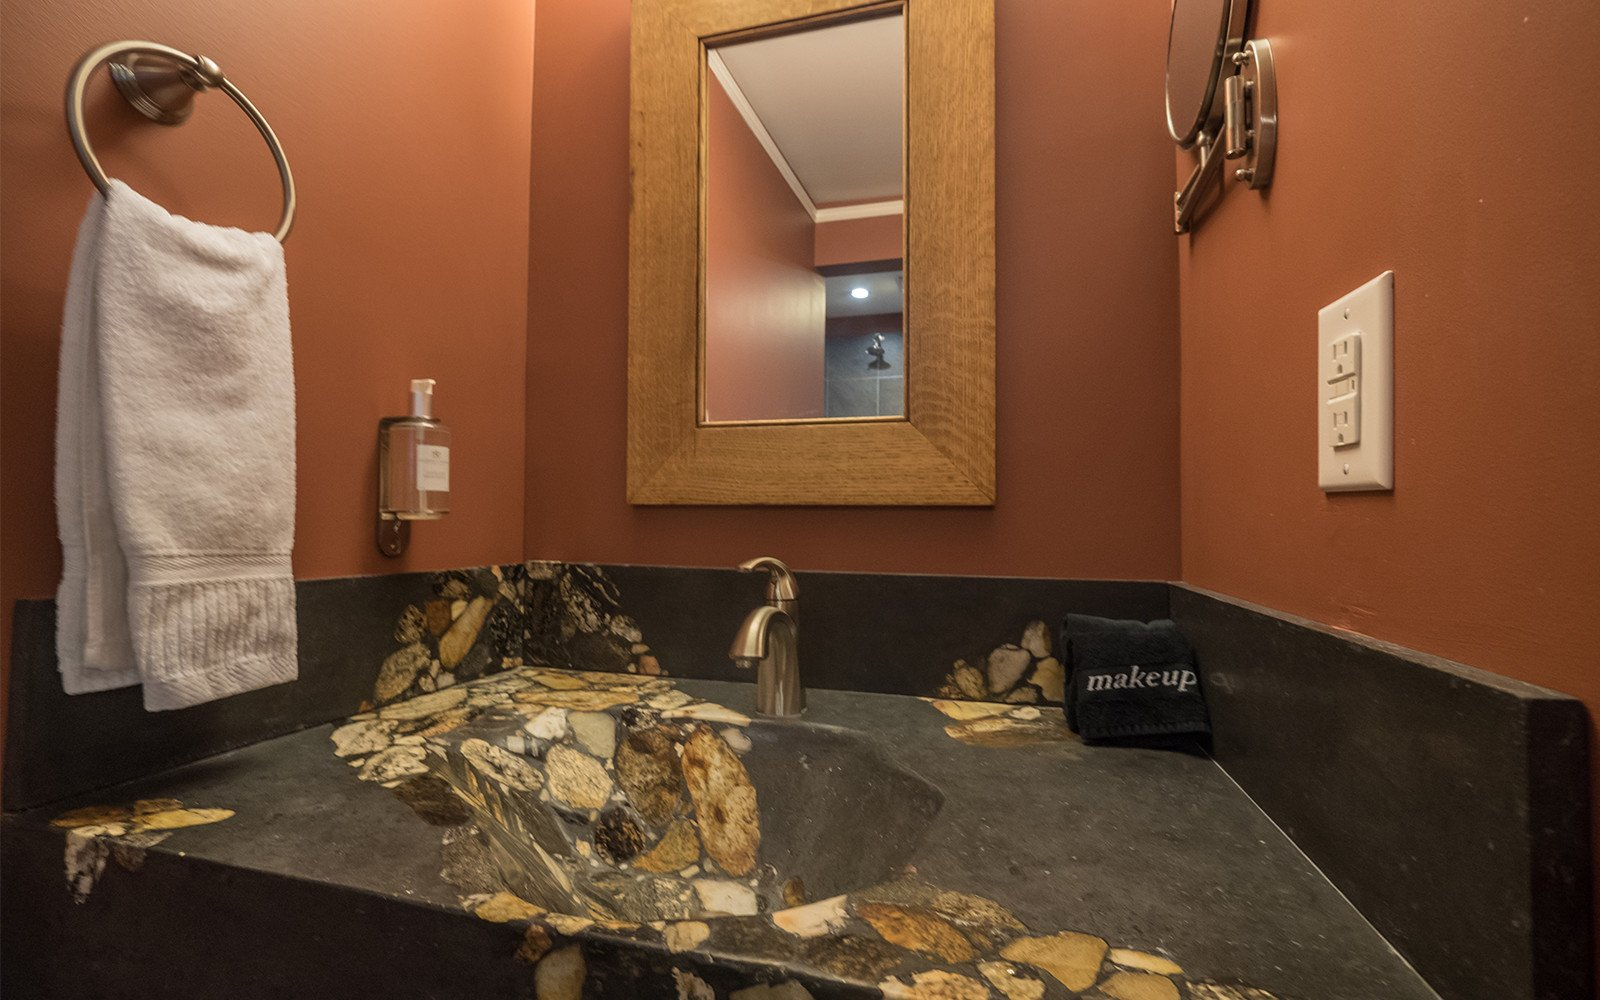 Braxton-custom-concrete-and-river-rock-sink